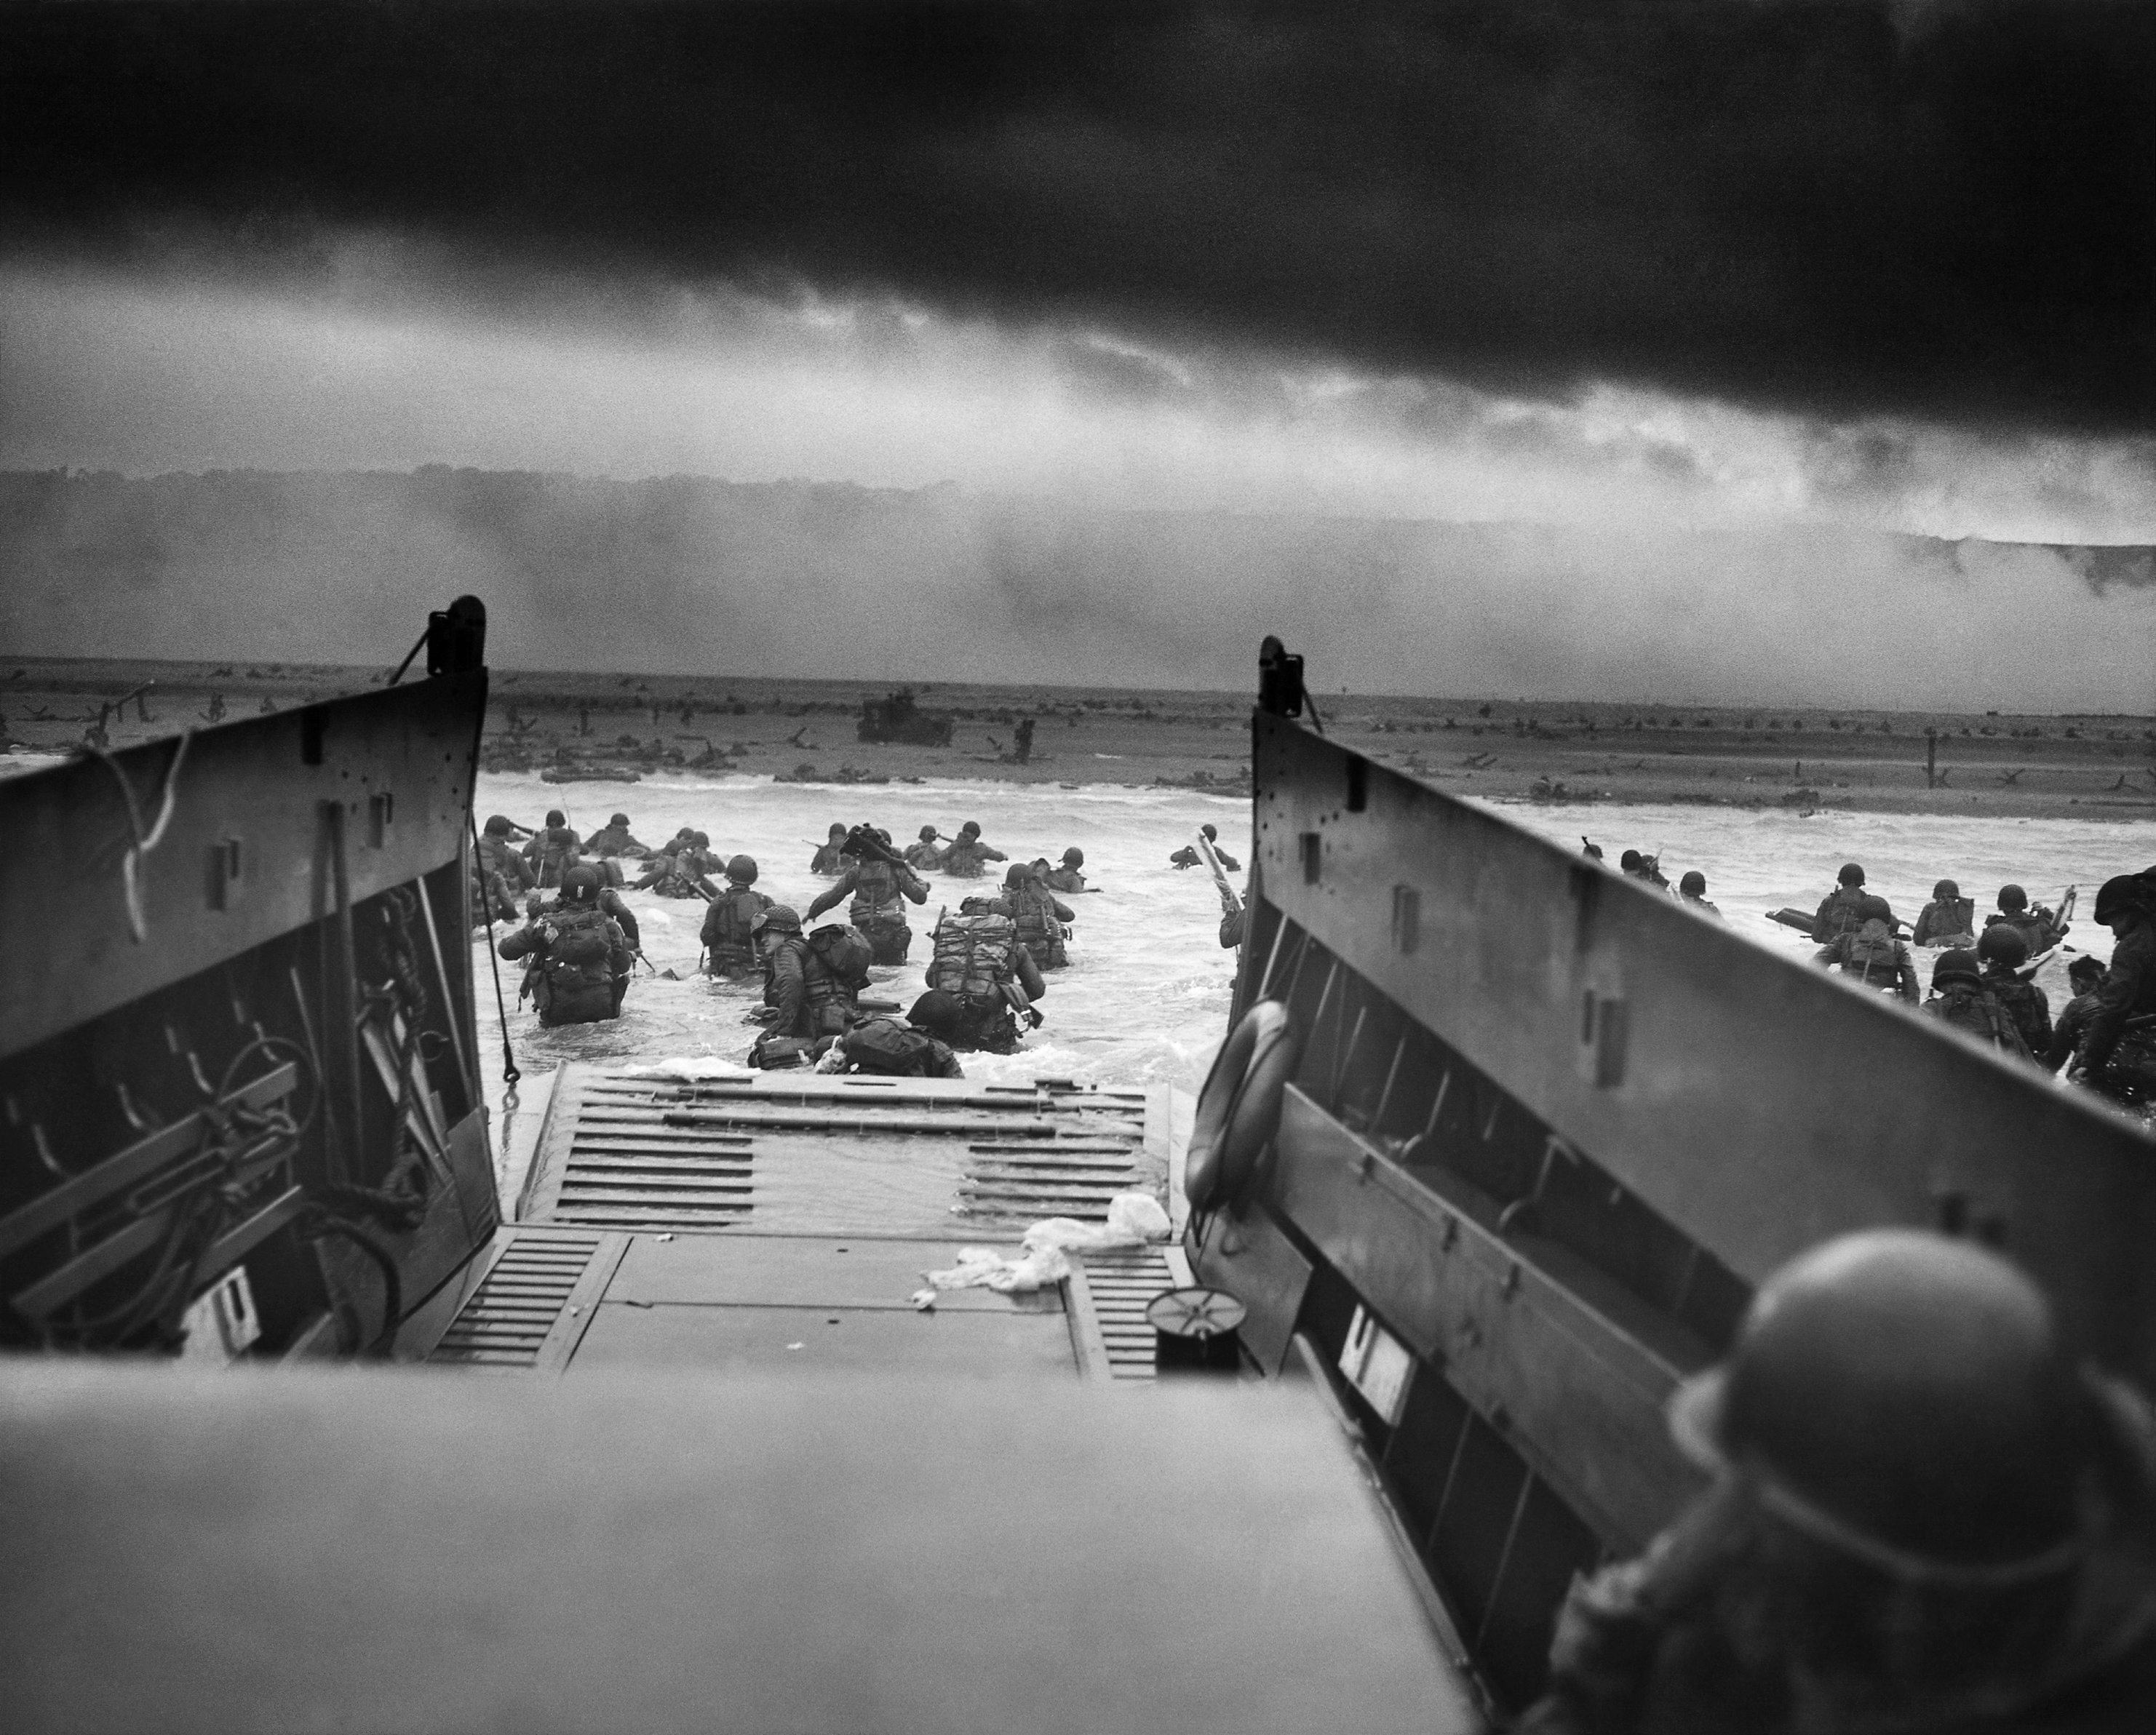 6 June 1944: A Navy LCVP disembarks troops at Omaha Beach.